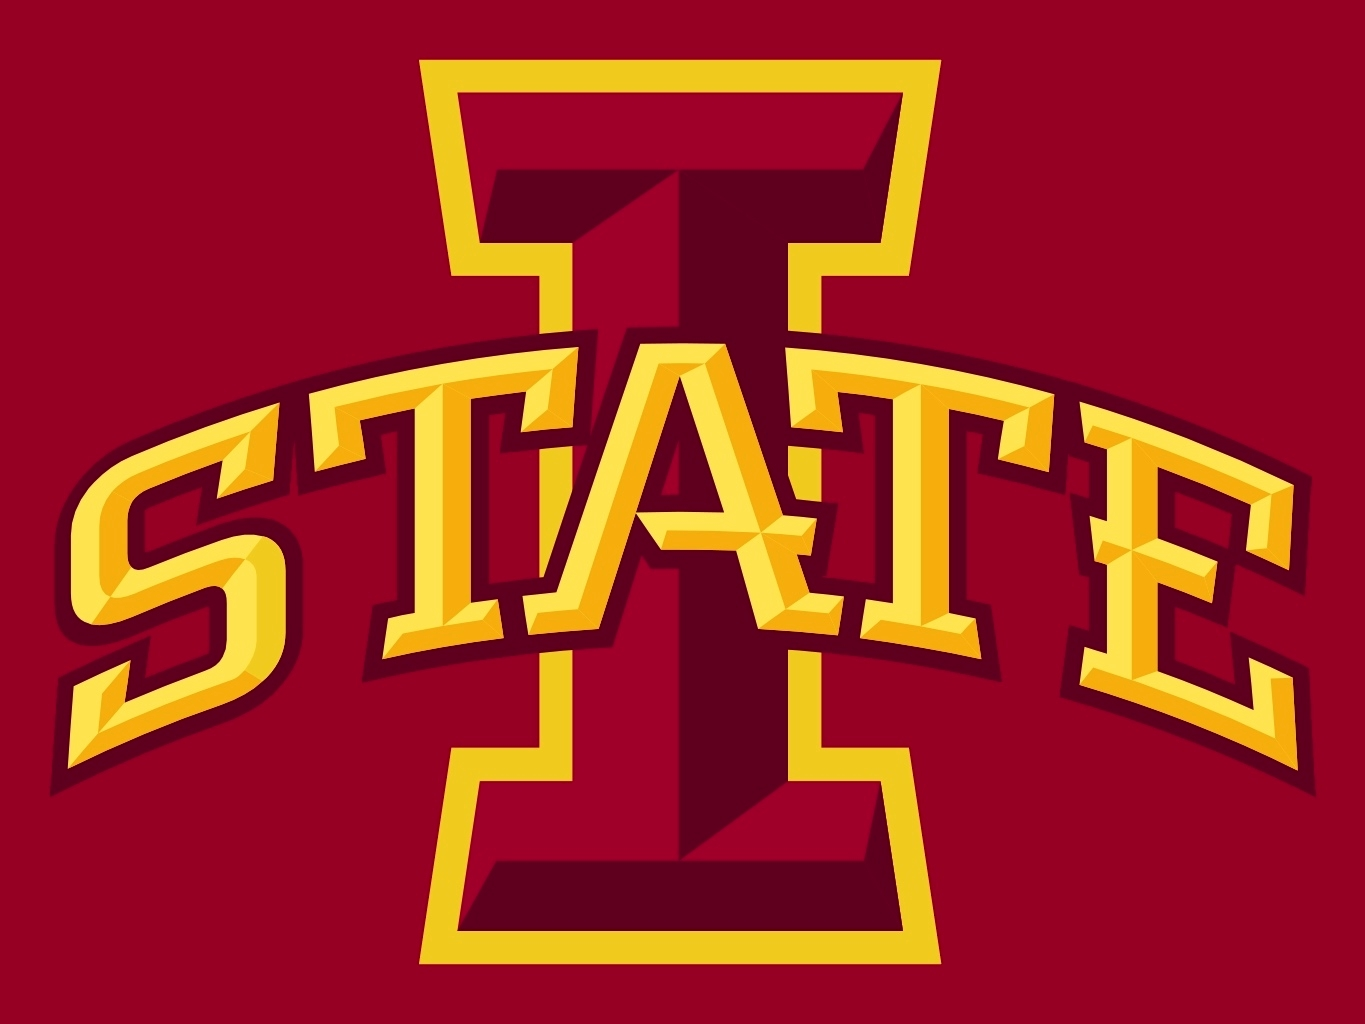 Iowa state university logo clipart picture transparent stock 17 Best images about Iowa state logos on Pinterest | Logos, Black ... picture transparent stock